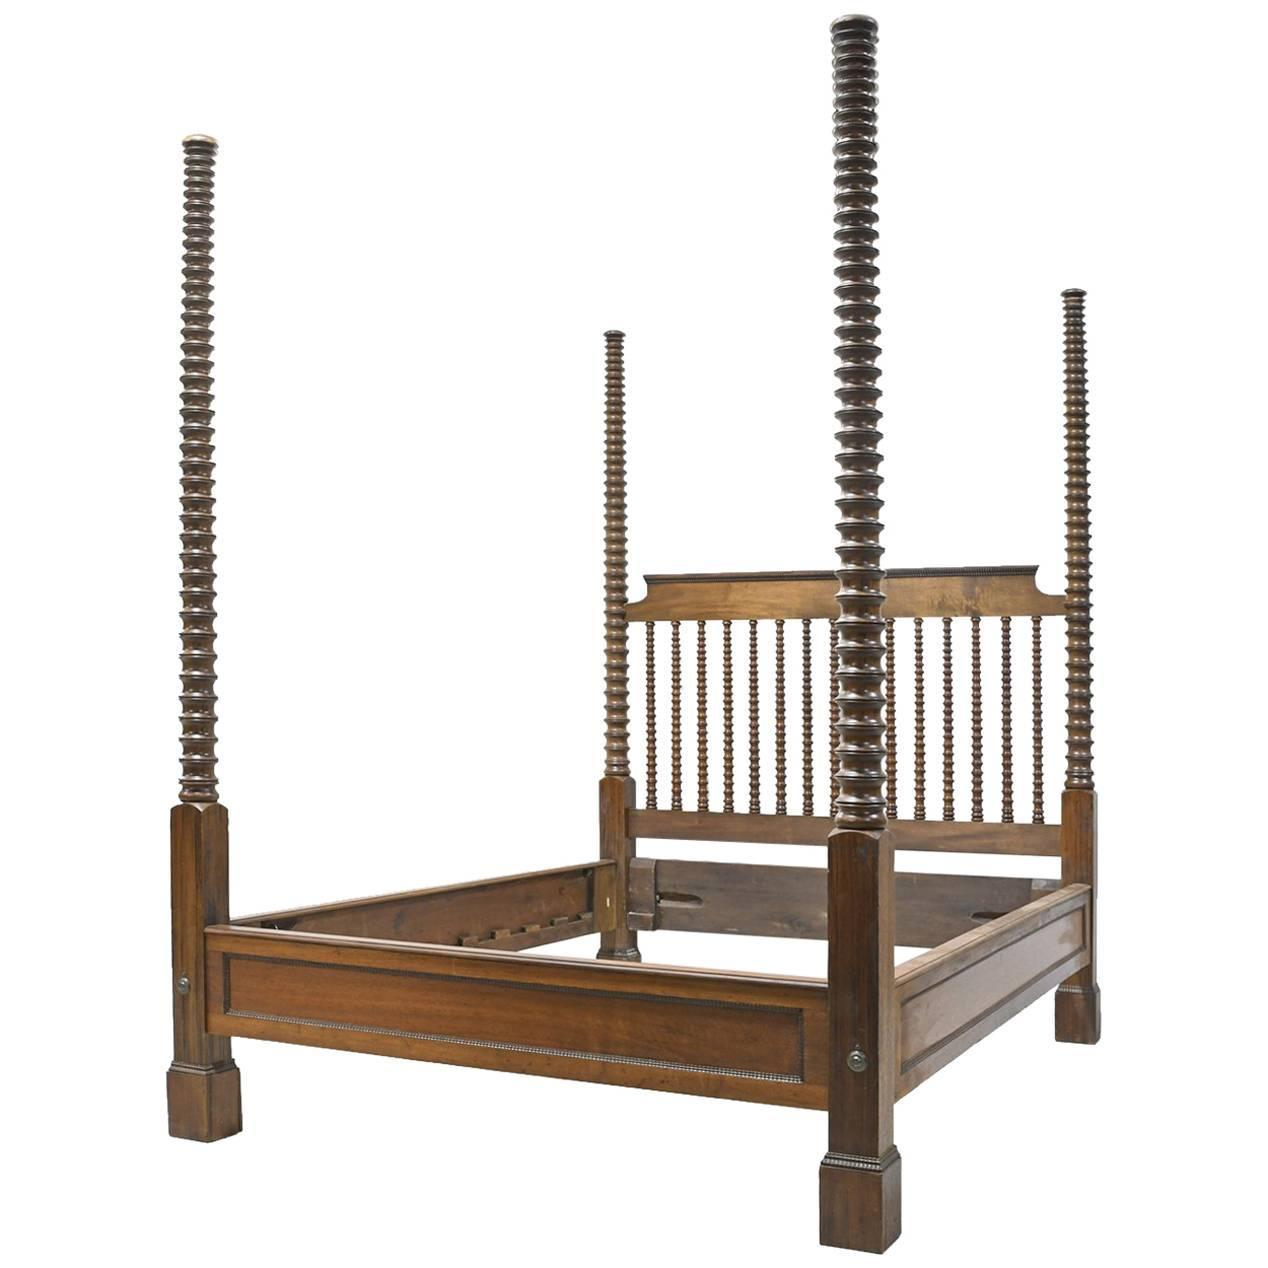 19th century queen size british colonial style american fourposter bed for sale at 1stdibs